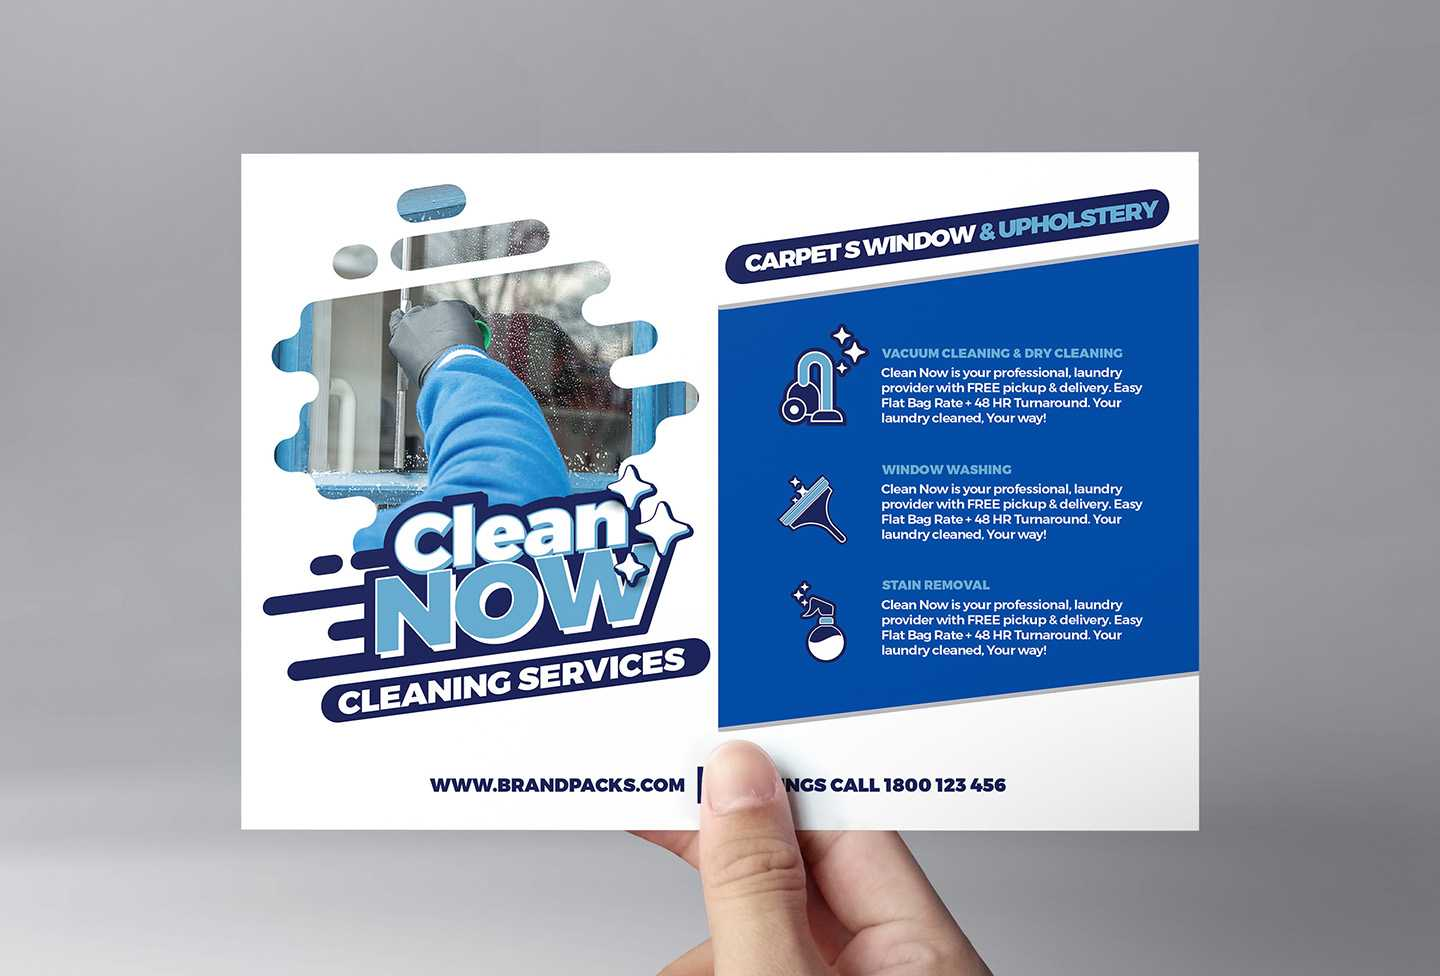 Cleaning Service Flyer Template In Psd, Ai & Vector - Brandpacks Within Cleaning Company Flyers Template